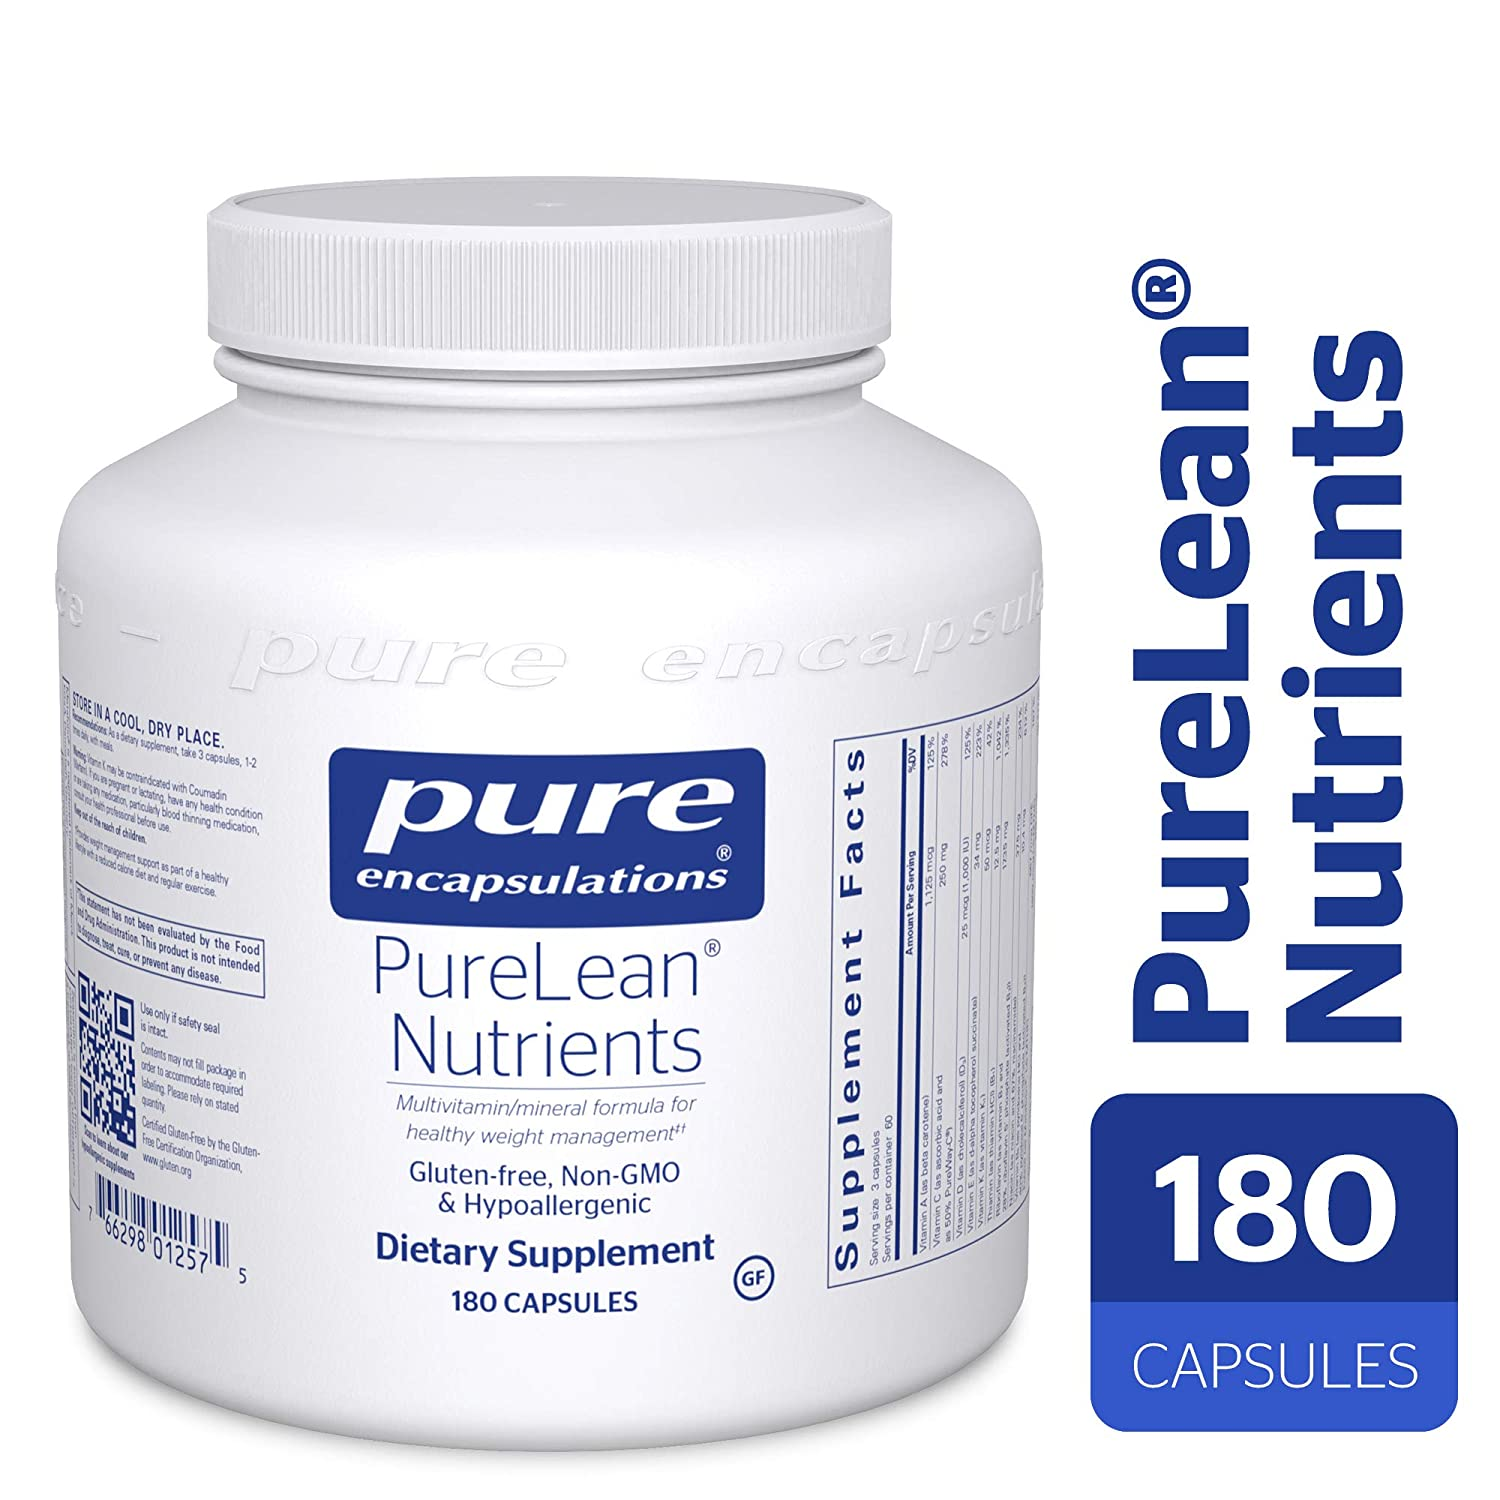 Pure Encapsulations – PureLean Nutrients – Hypoallergenic Supplement for Healthy Glucose Metabolism and Weight Management** – 180 Capsules